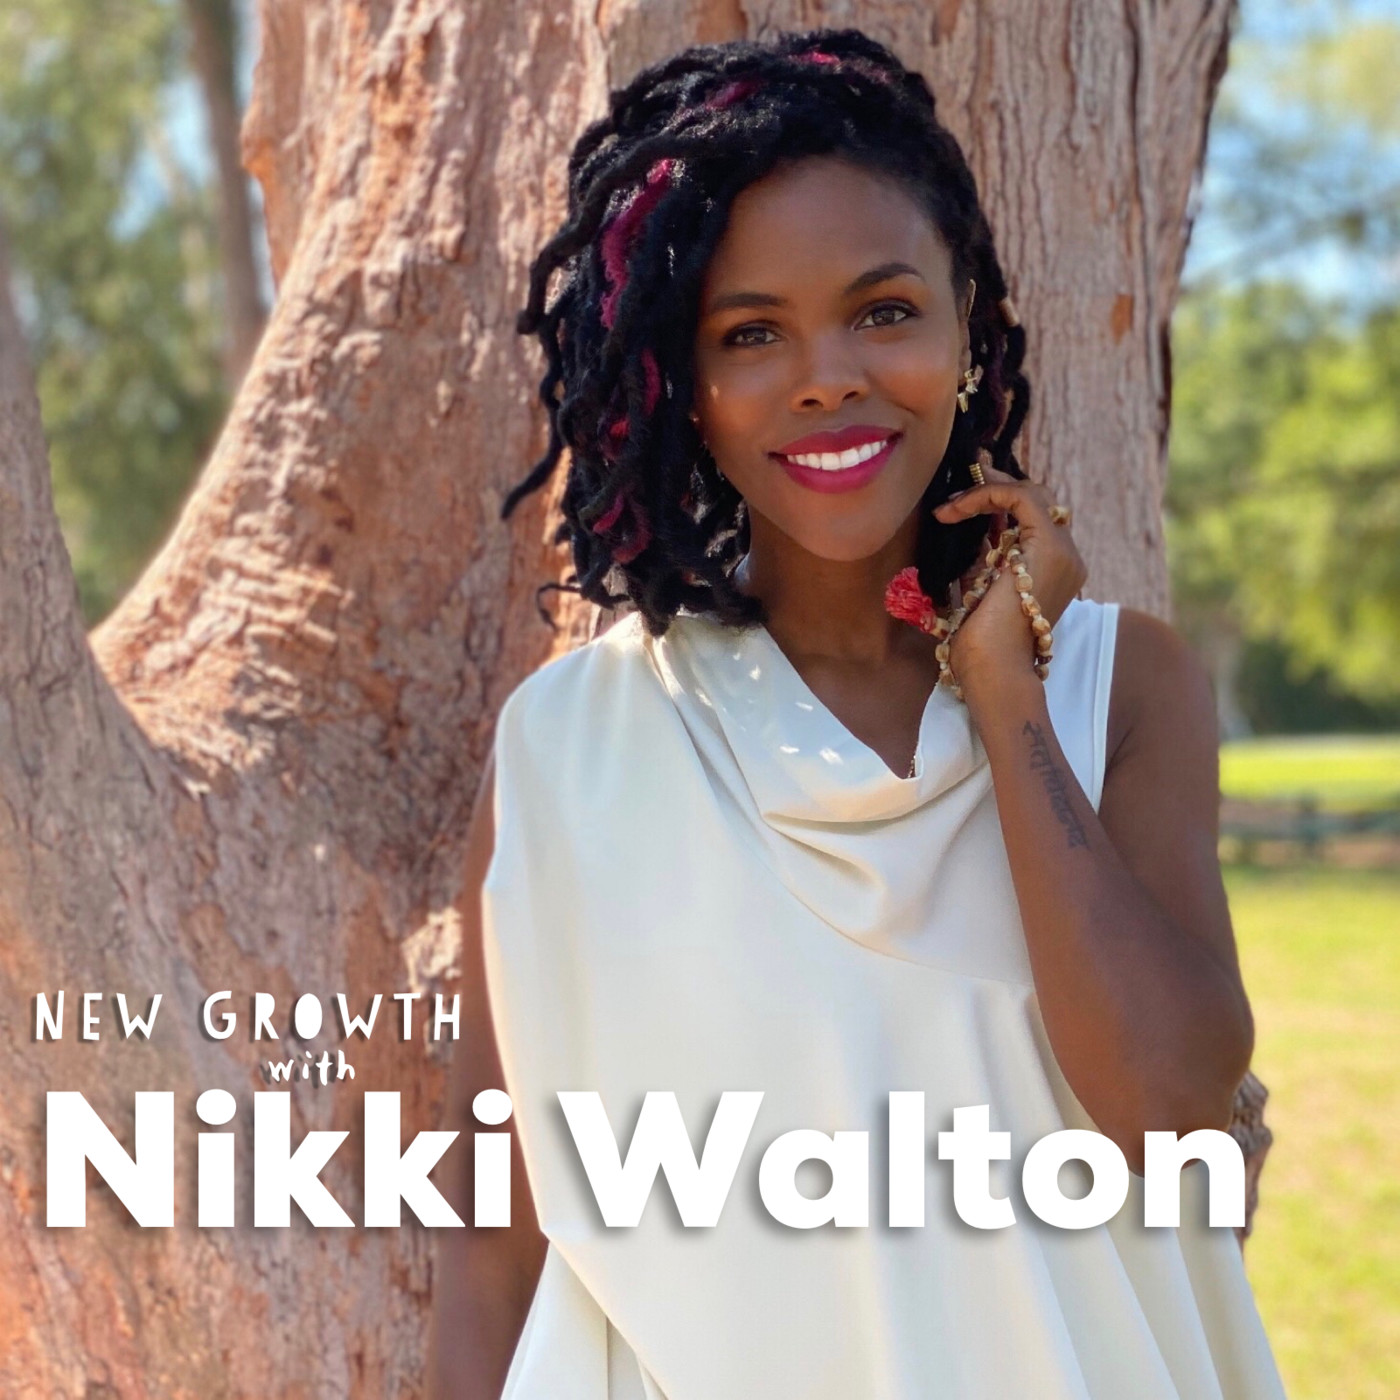 New Growth with Nikki Walton